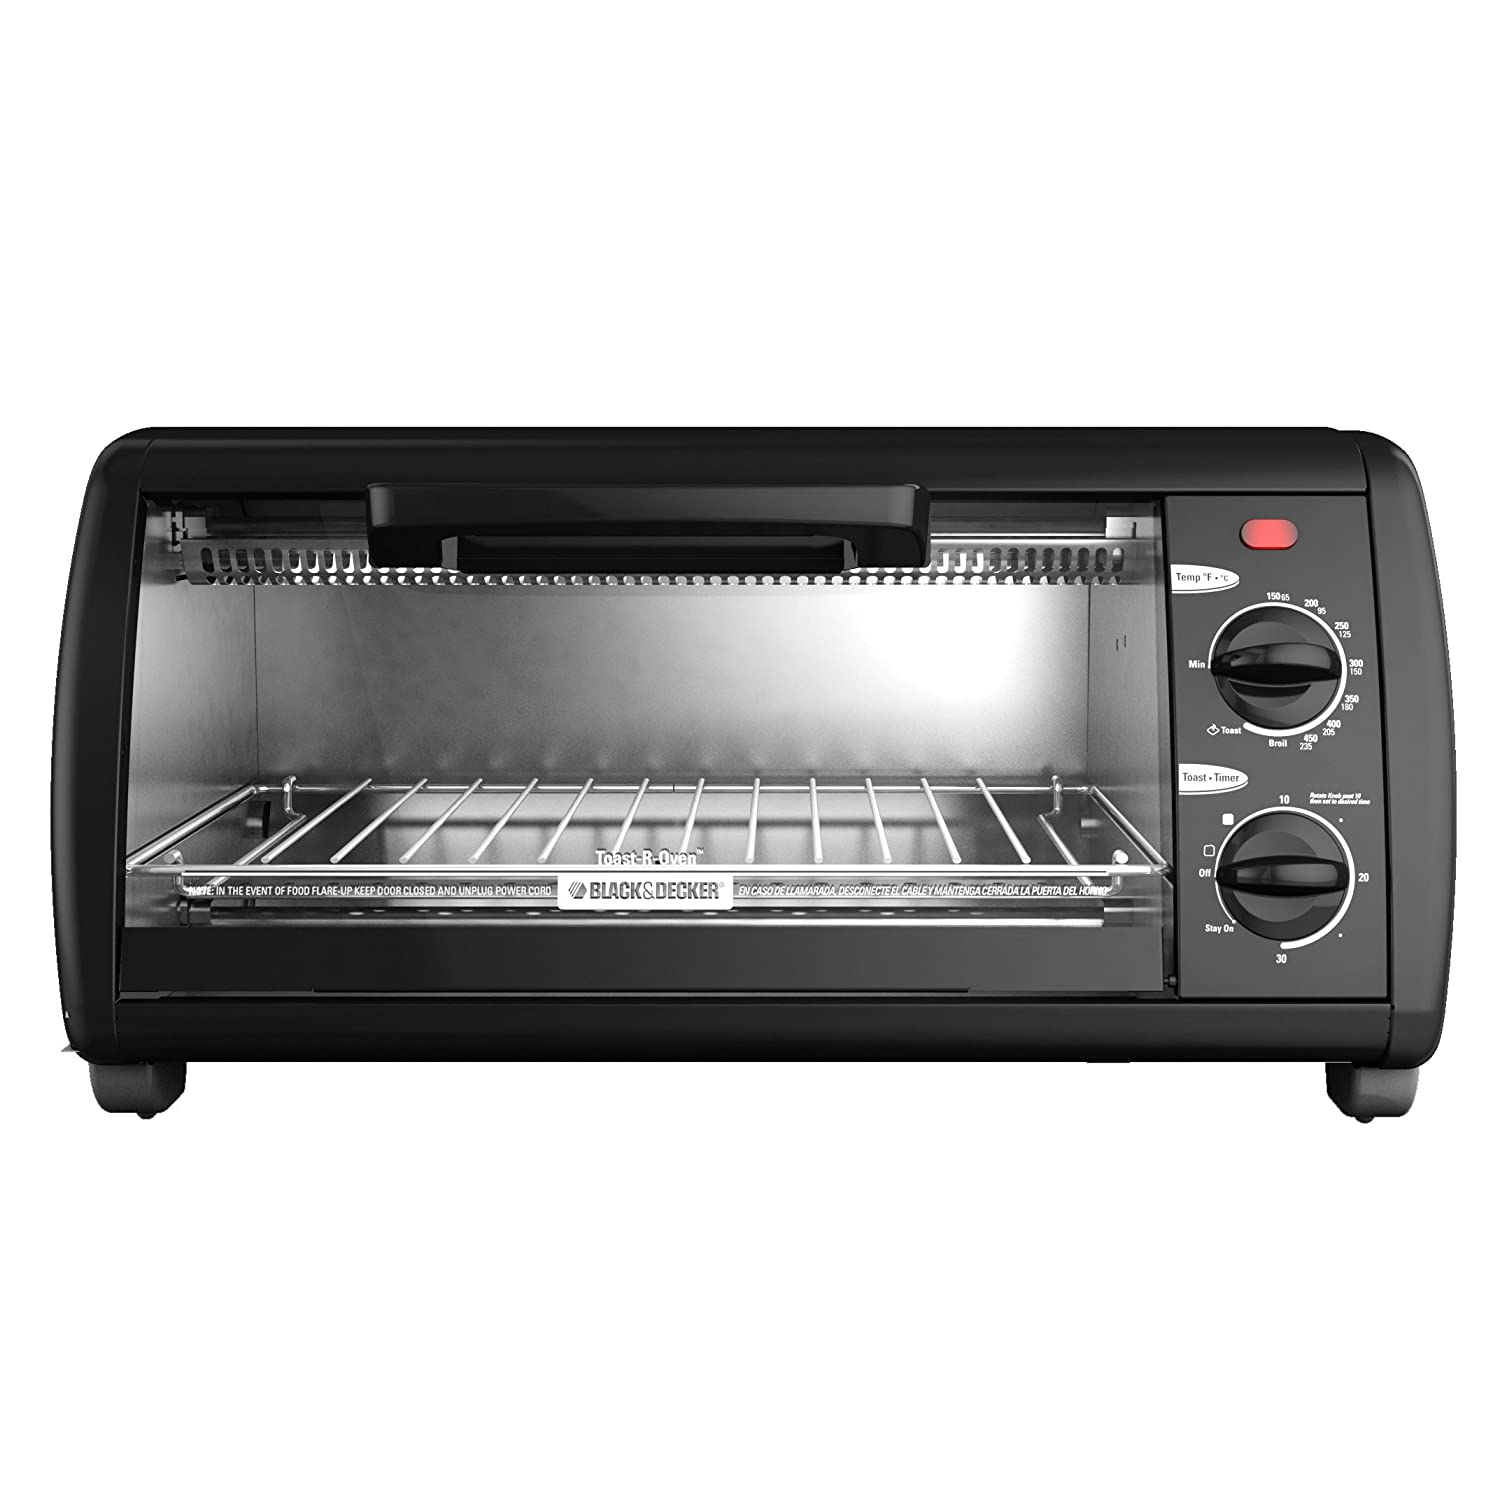 Black & Decker 4-Slice Electric Toaster Oven Baking ...